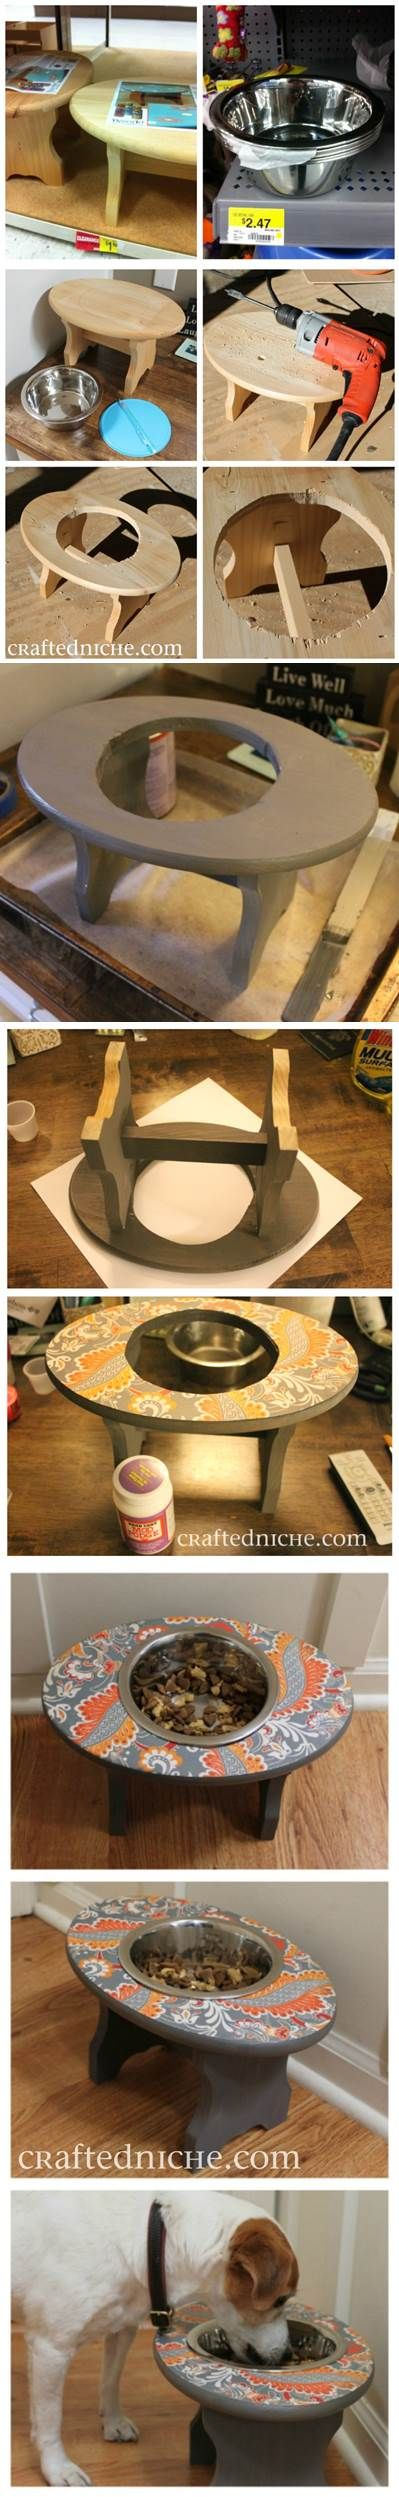 Incredible Diy Feeder Bowl Cut Into Wooden Step Stool Zeus Dog Andrewgaddart Wooden Chair Designs For Living Room Andrewgaddartcom